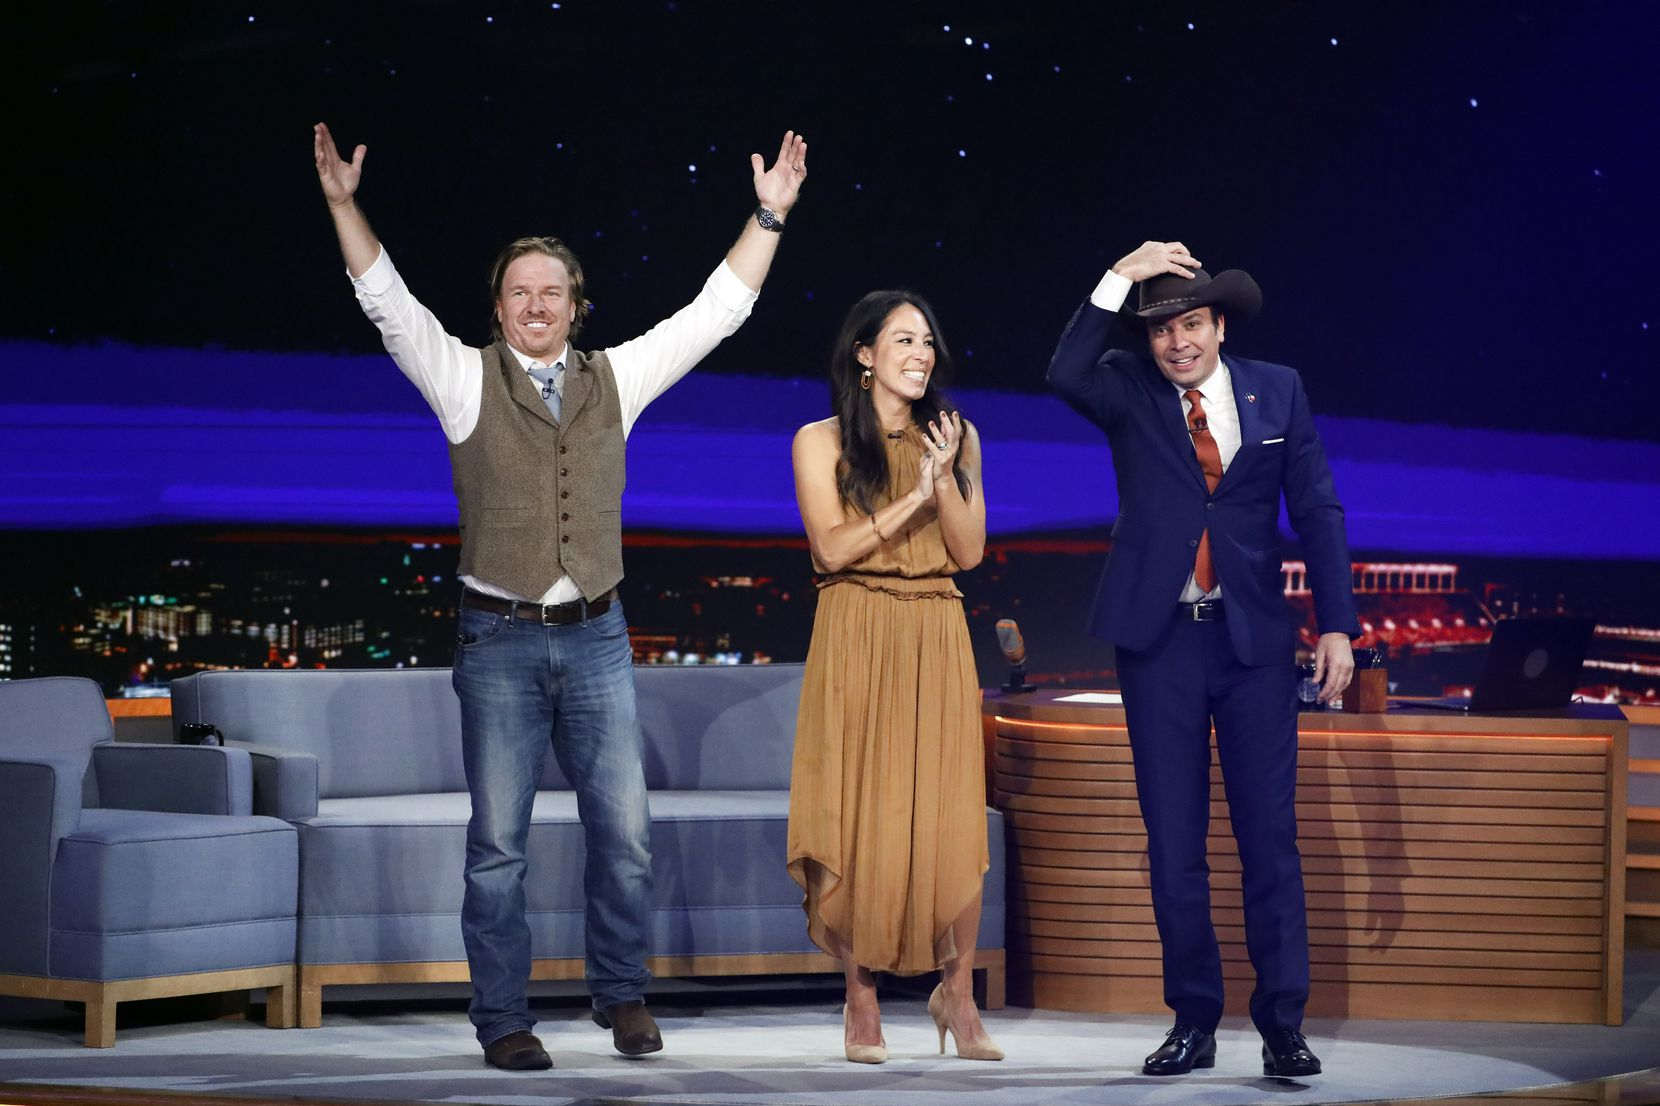 Chip Gaines taught Jimmy Fallon to two-step at a taping Nov. 7, 2019 in Austin. During the same talk, Joanna Gaines announced she'll have a new cooking show on their Magnolia network.